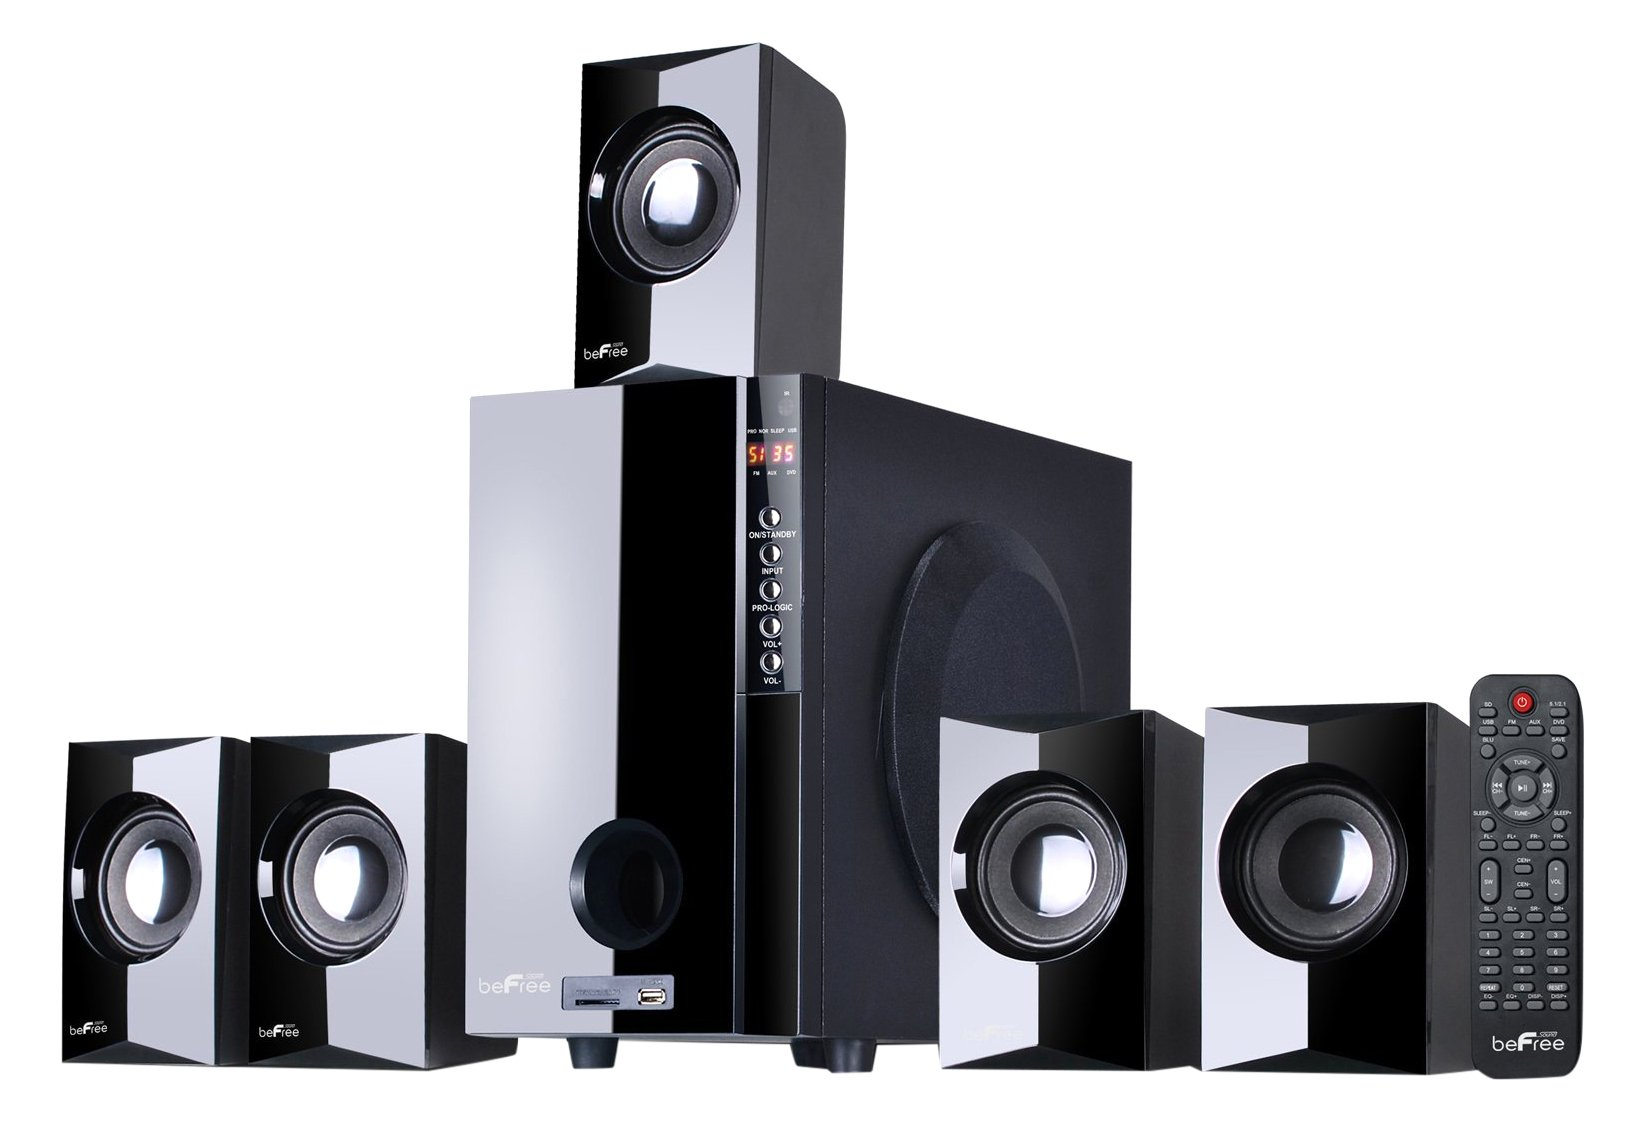 beFree Sound BFS-430 Surround Sound Home Stereo Speakers by BEFREE SOUND